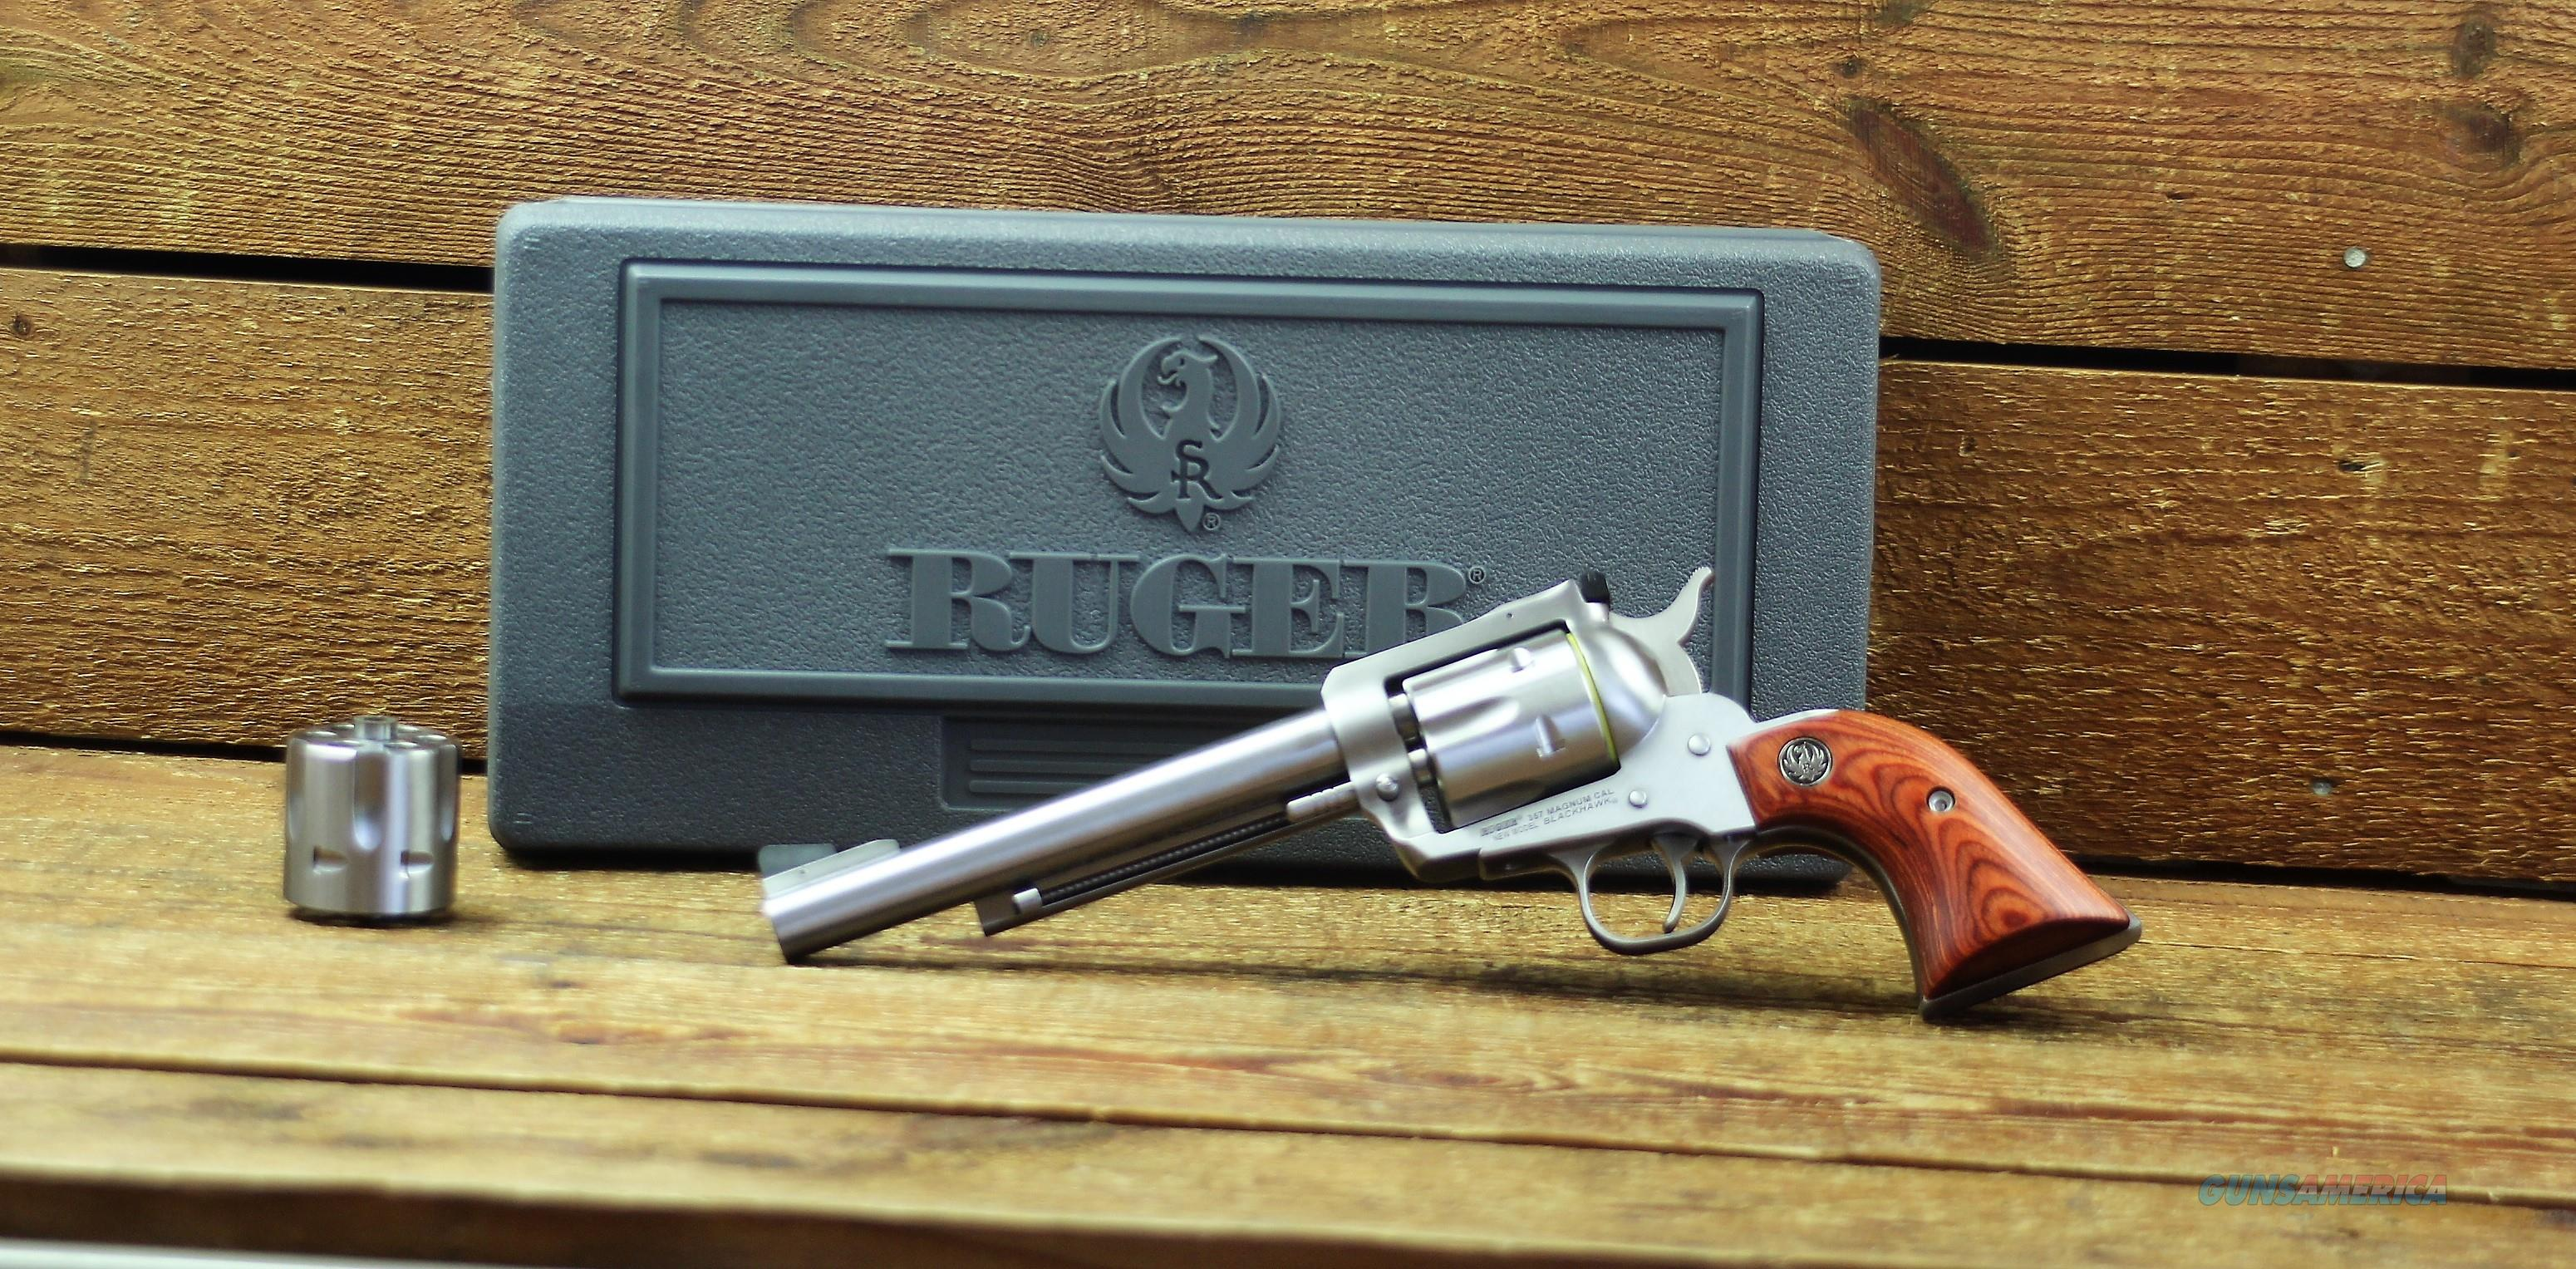 "EASY PAY $65 LAYAWAY  RUGER KBN36X 357/9MM 6.5"" SS WSS Revolver EXCLUSIVE 0320 736676003204  Guns > Pistols > Ruger Single Action Revolvers > Blackhawk Type"